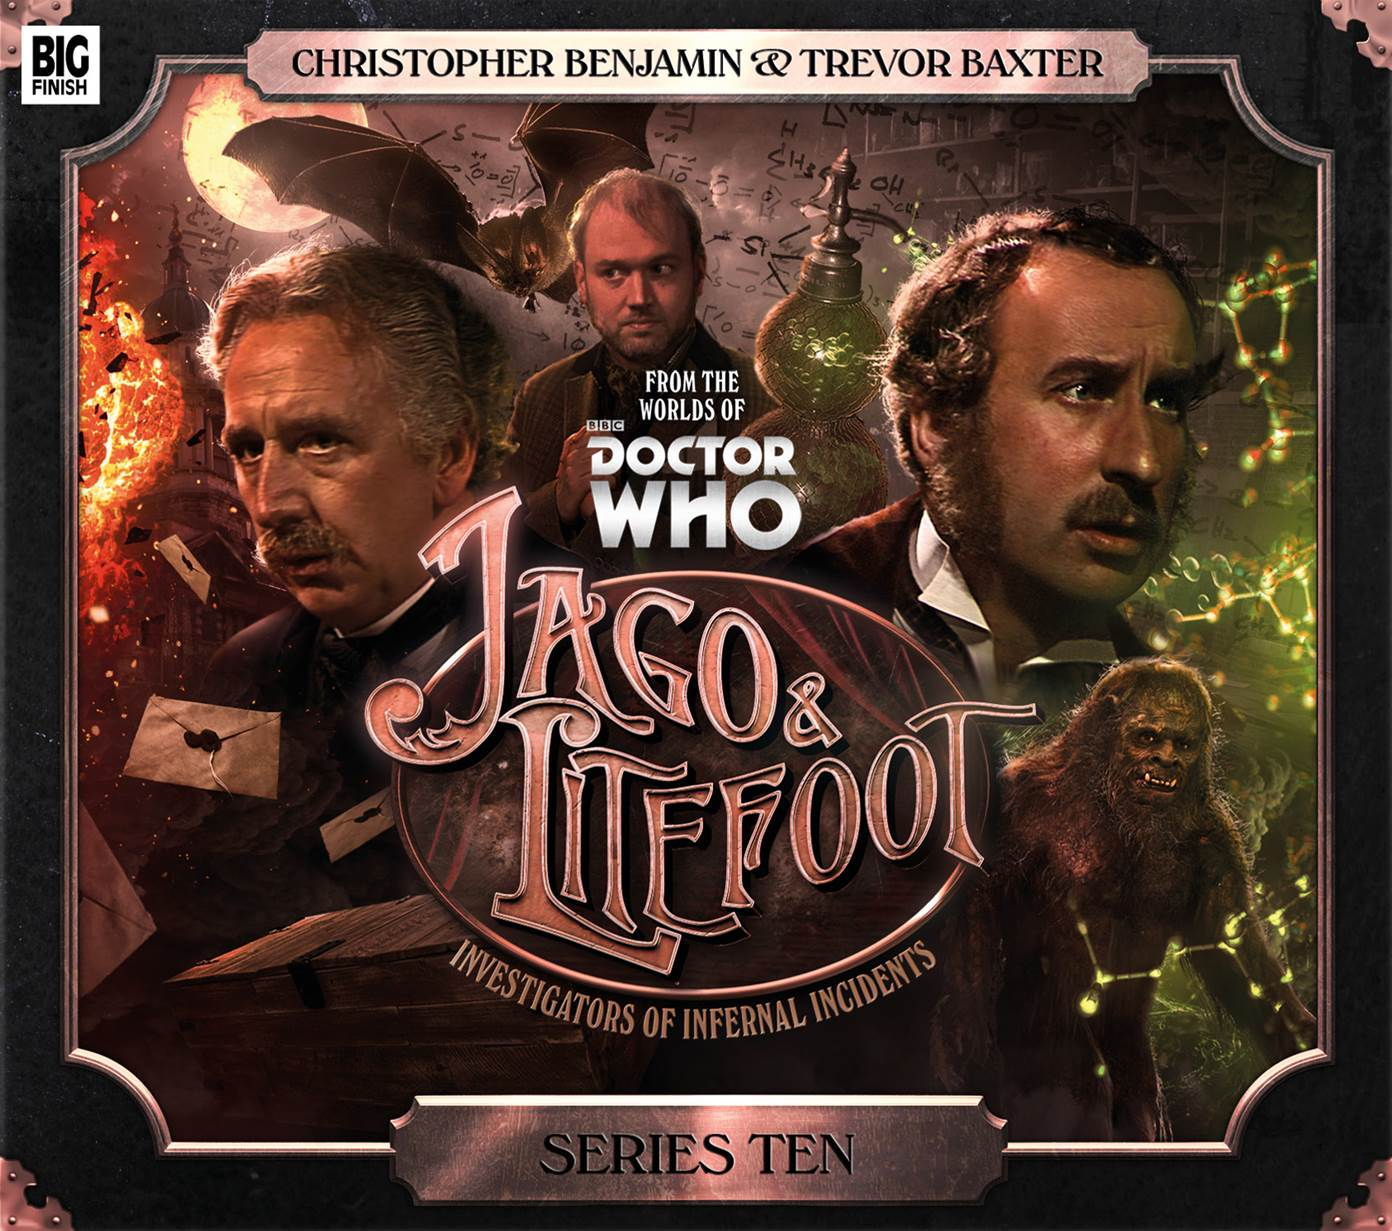 Jago & Litefoot & Strax (Credit: Big Finish)